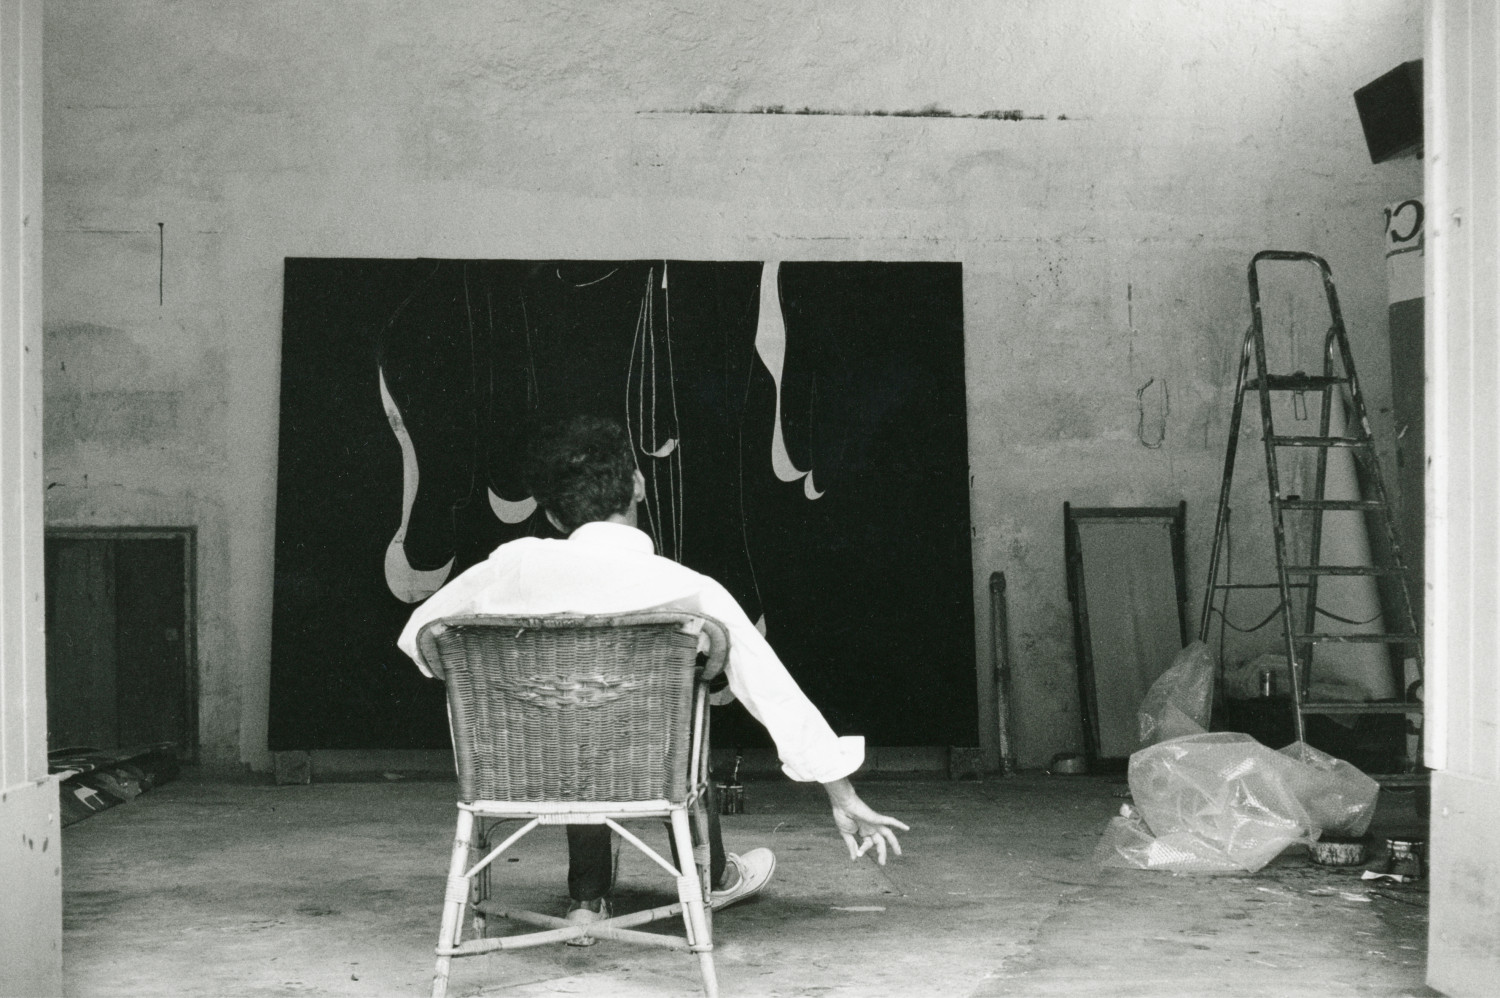 Jean Charles Blais, 'Jean-Charles Blais in his studio, Vence, France'